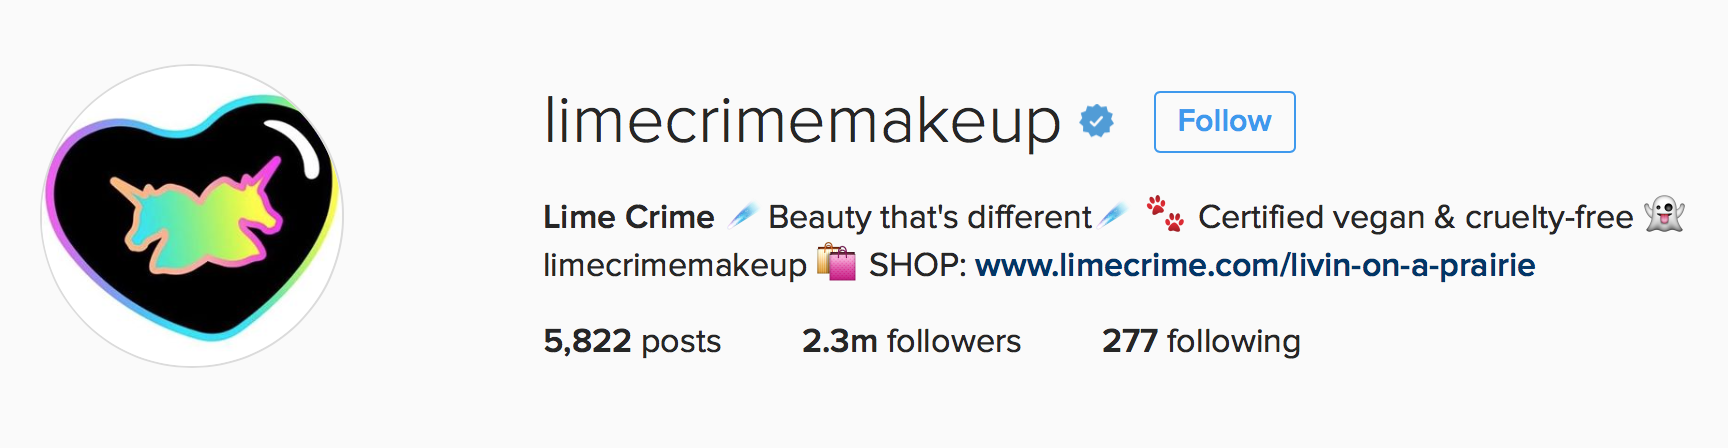 Use of emojis in Lime Crime Makeup's Instagram bio